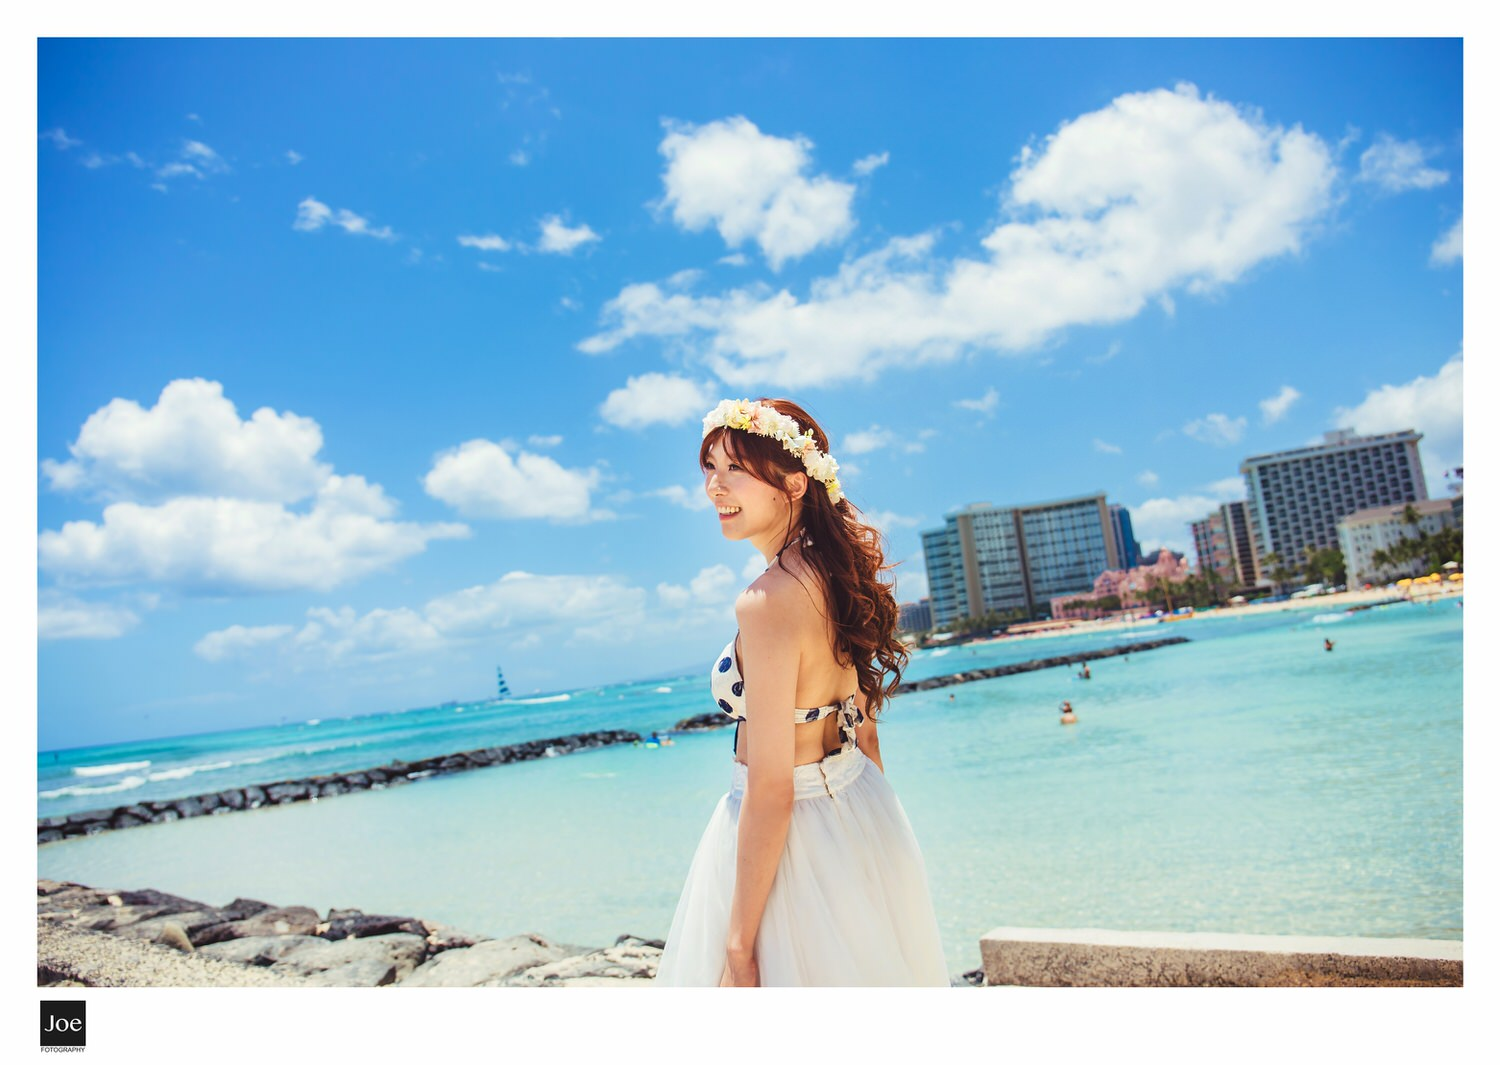 077-waikiki-beach-hawaii-pre-wedding-tiffany-tony-joe-fotography.jpg